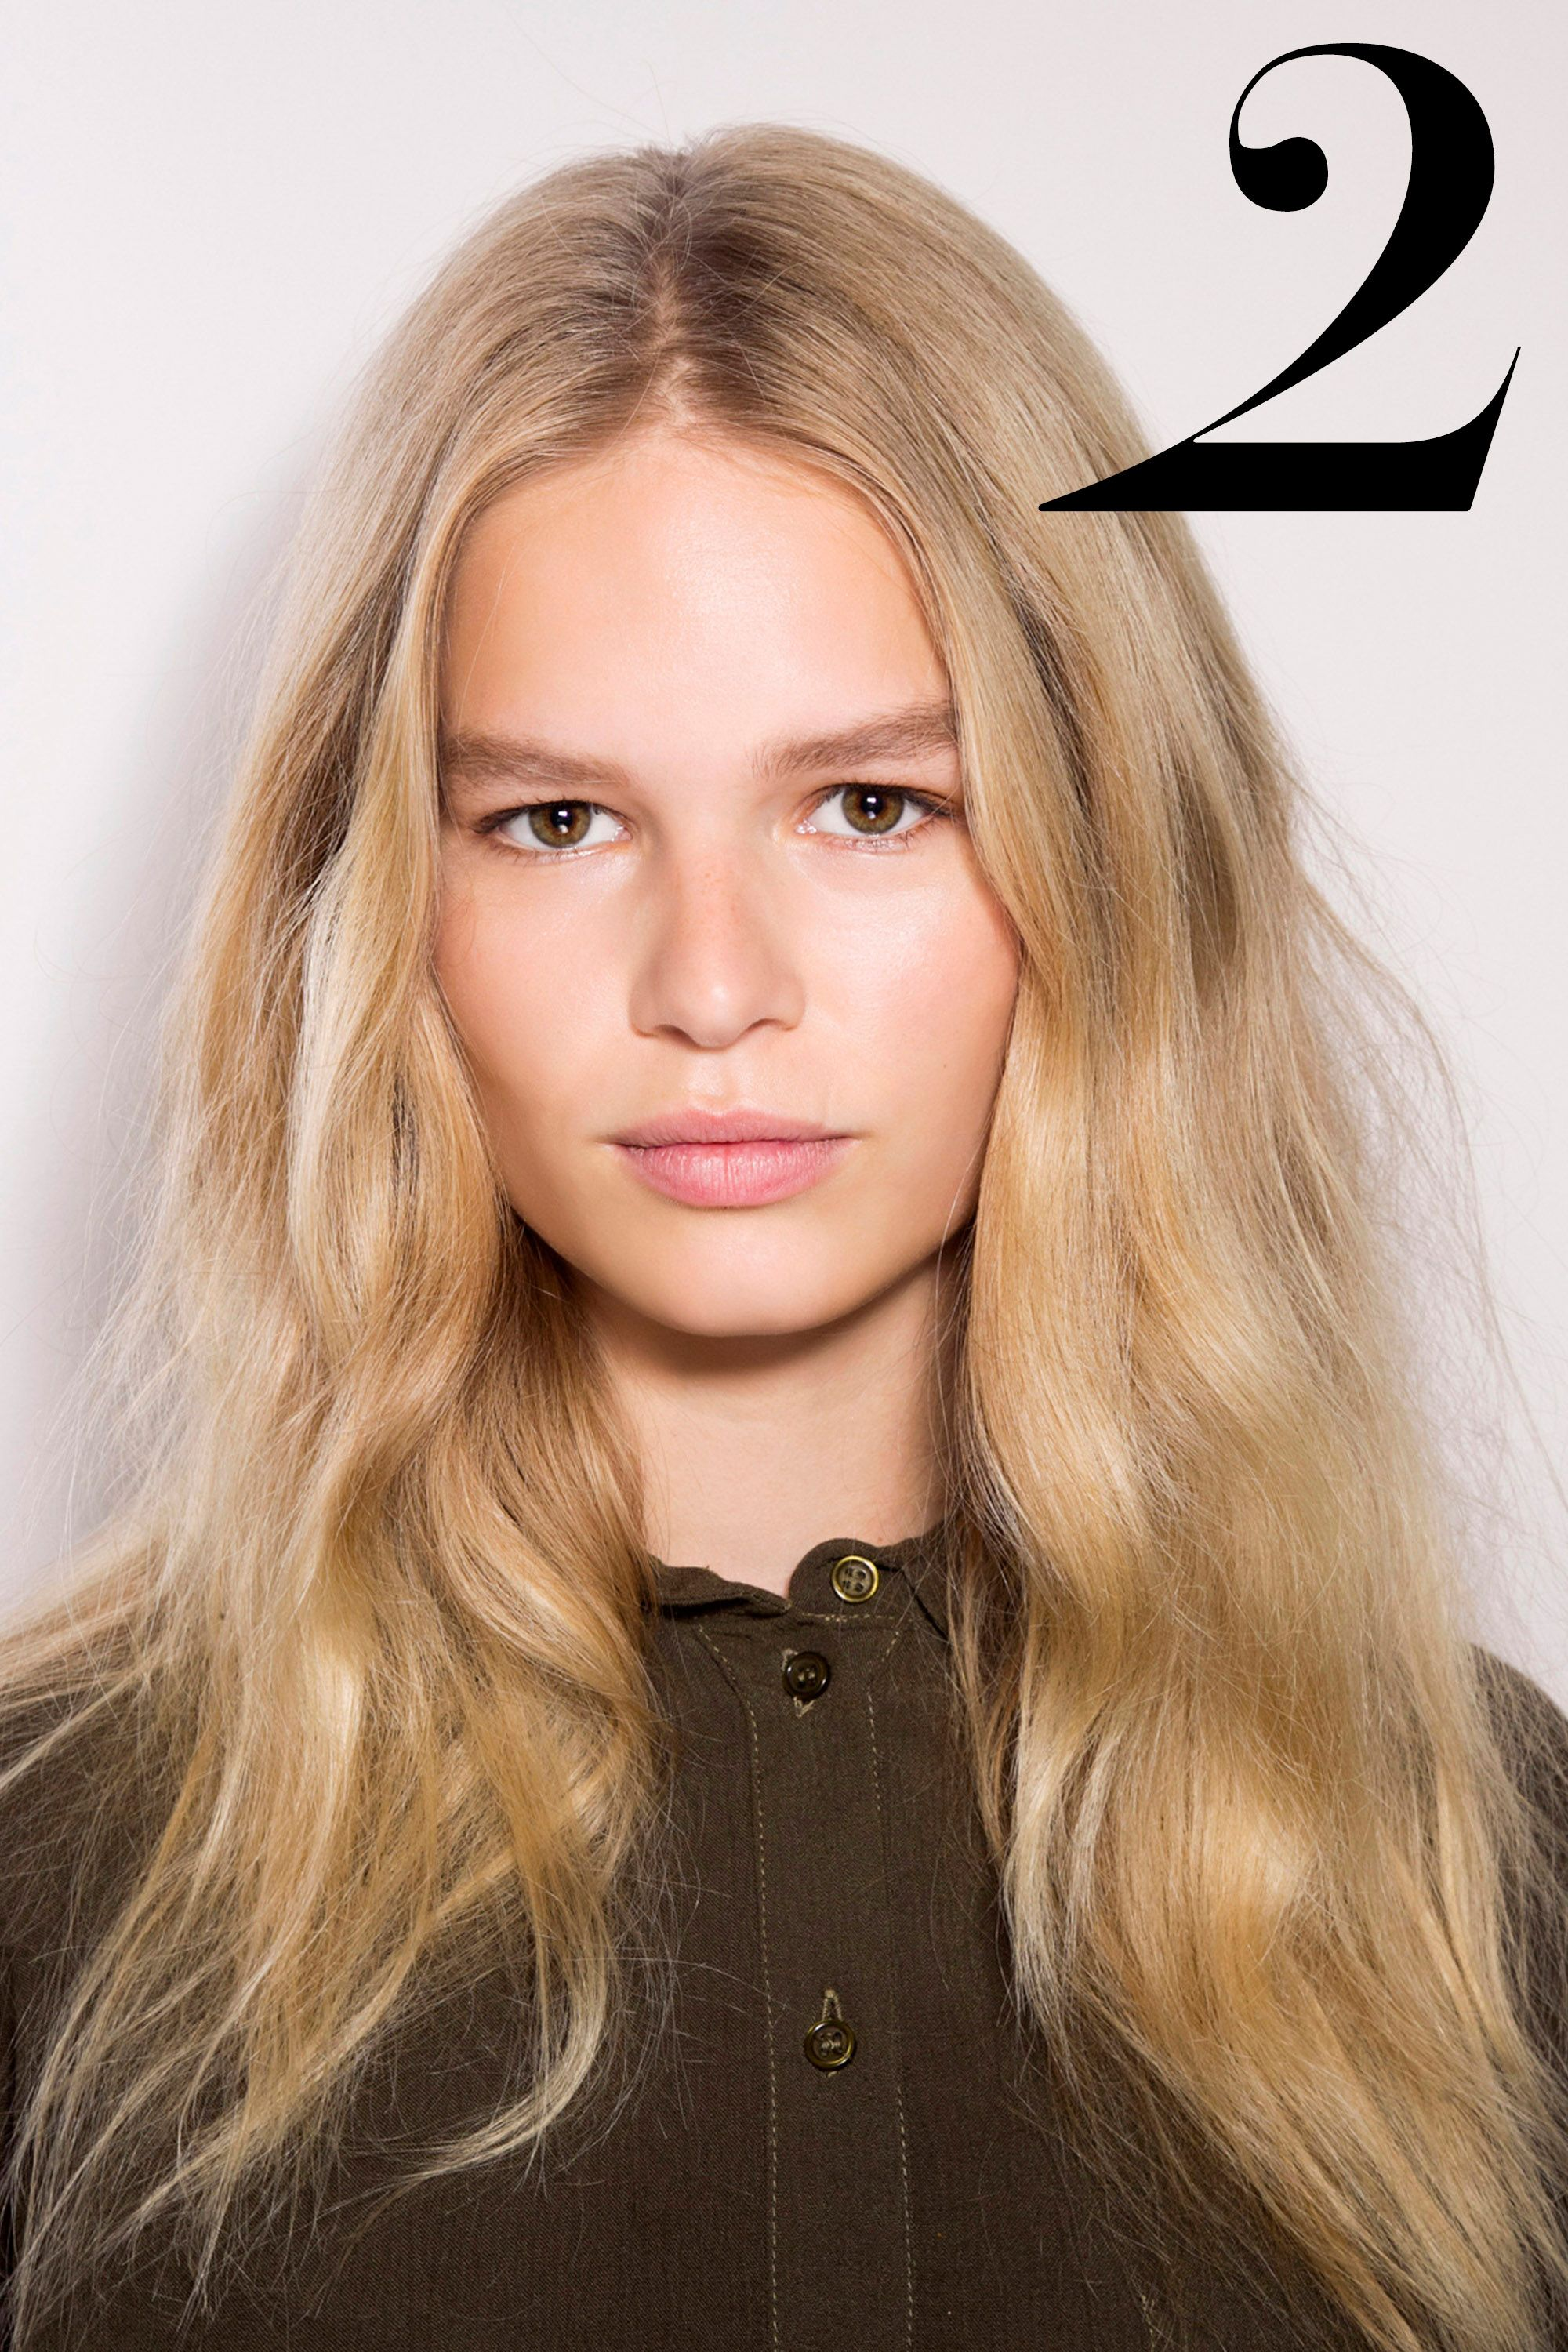 """A modern day Brigitte Bardot, I'm looking to model-of-the-moment Anna Ewers for my beach waves and pinky fresh-faced beauty inspiration as we spring forward."" —Joyann King, Editor Bazaar.com"